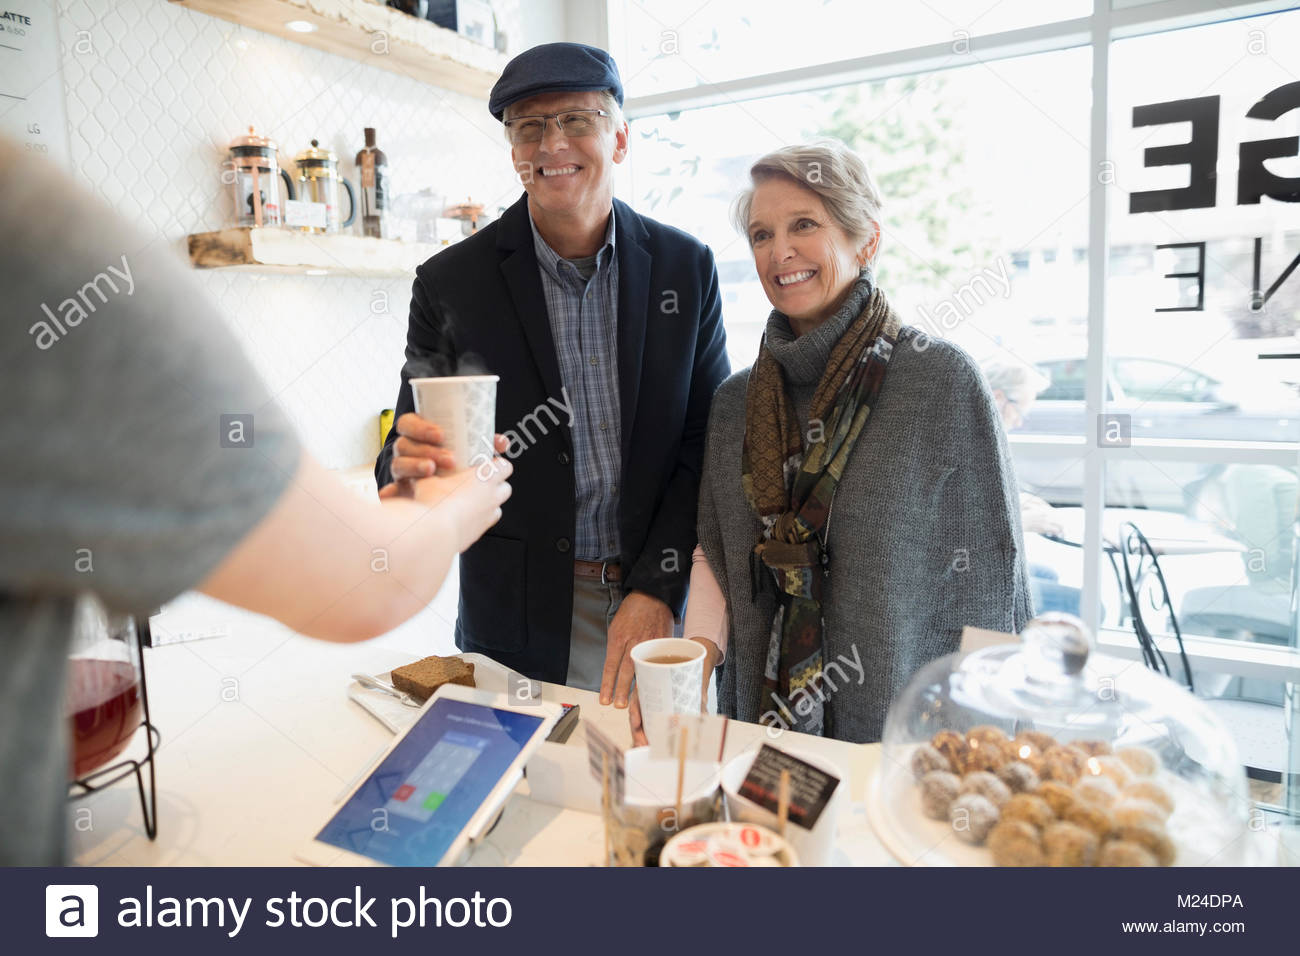 Smiling senior couple buying coffee at cafe counter - Stock Image